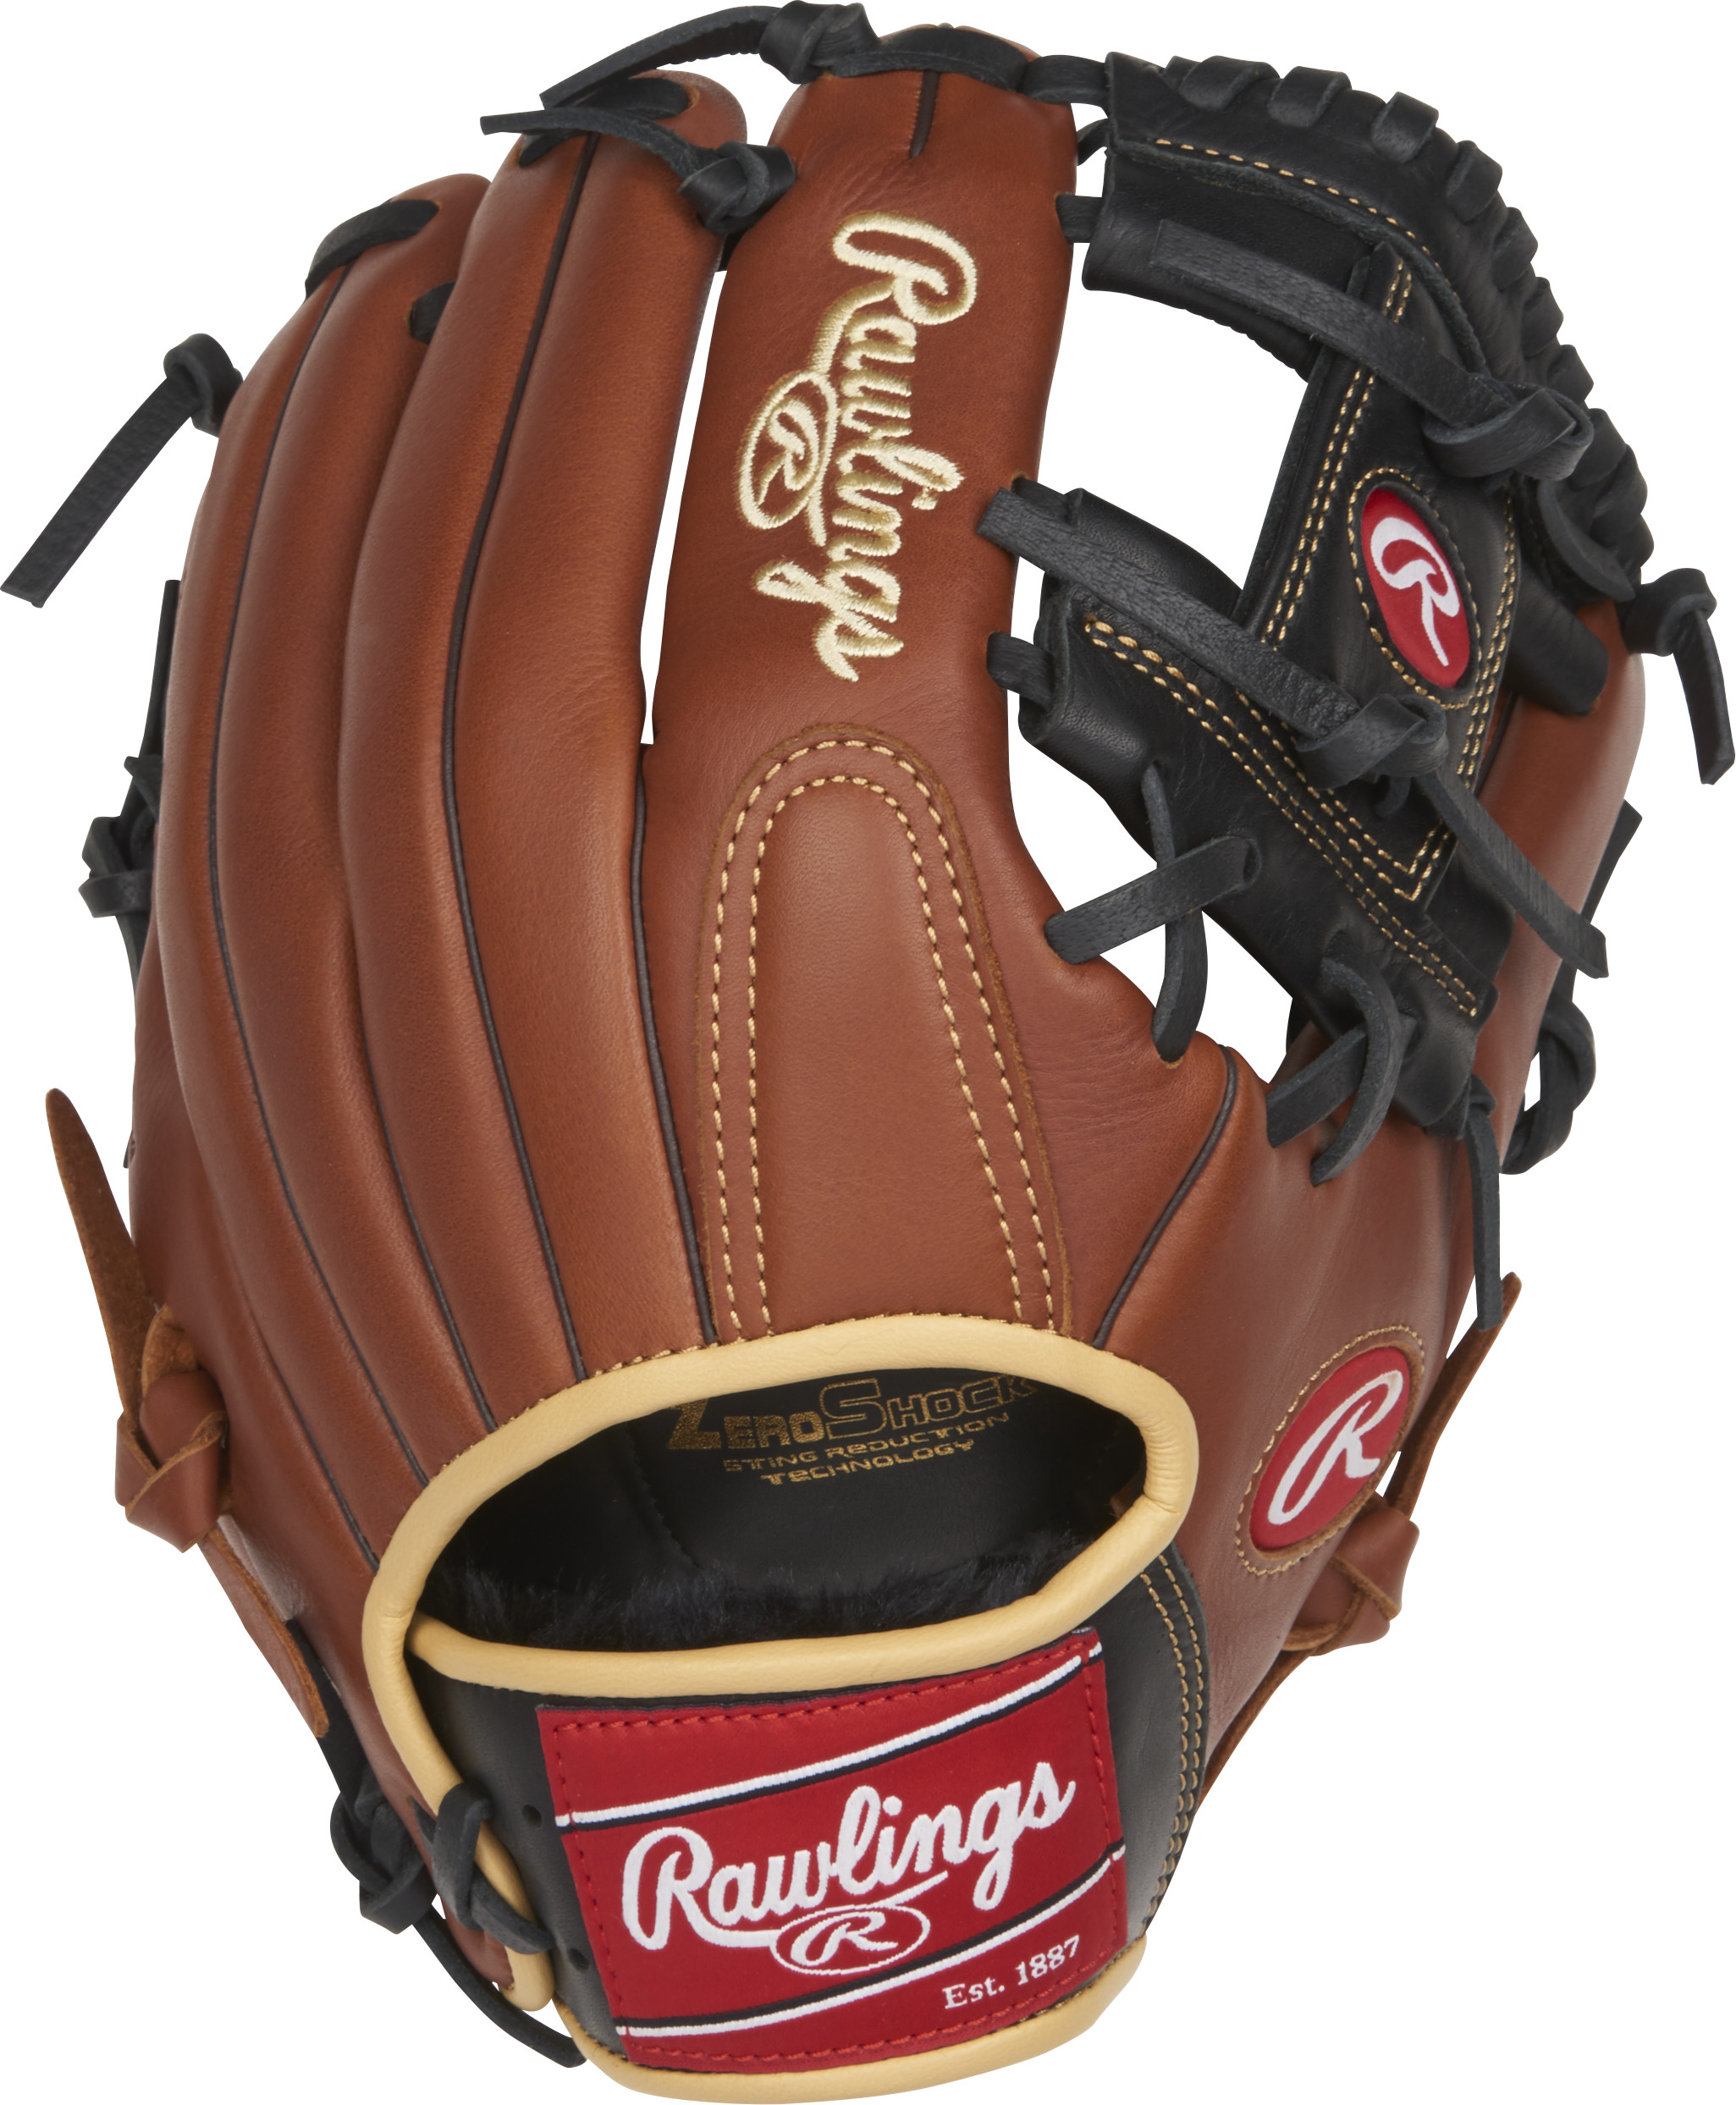 http://www.bestbatdeals.com/images/gloves/rawlings/S1150I-2.jpg